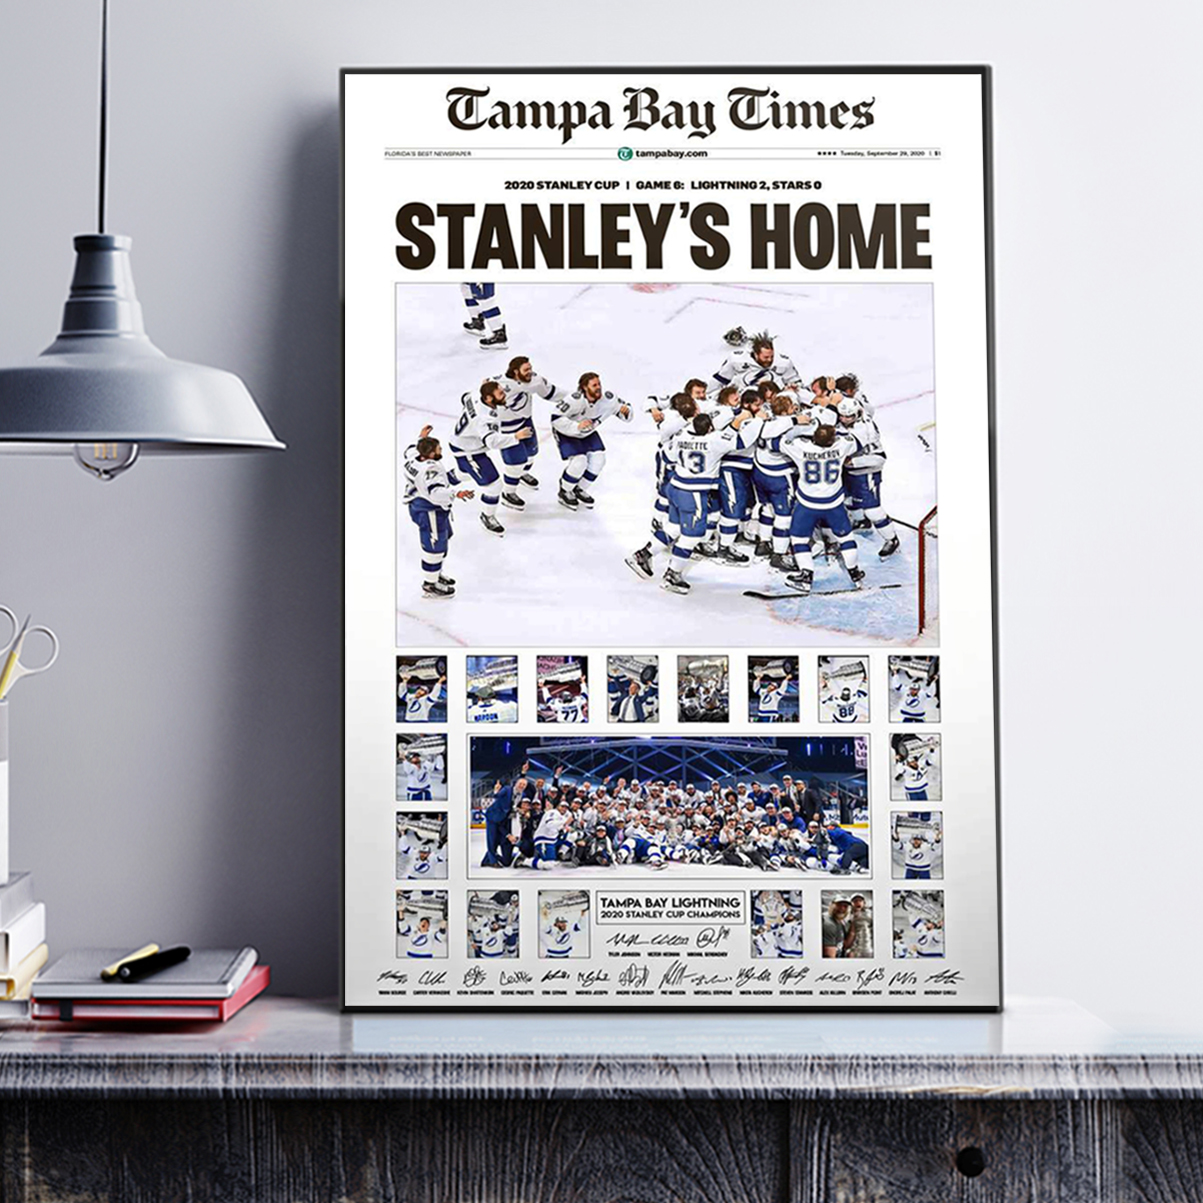 Tampa bay times stanley's home poster A1